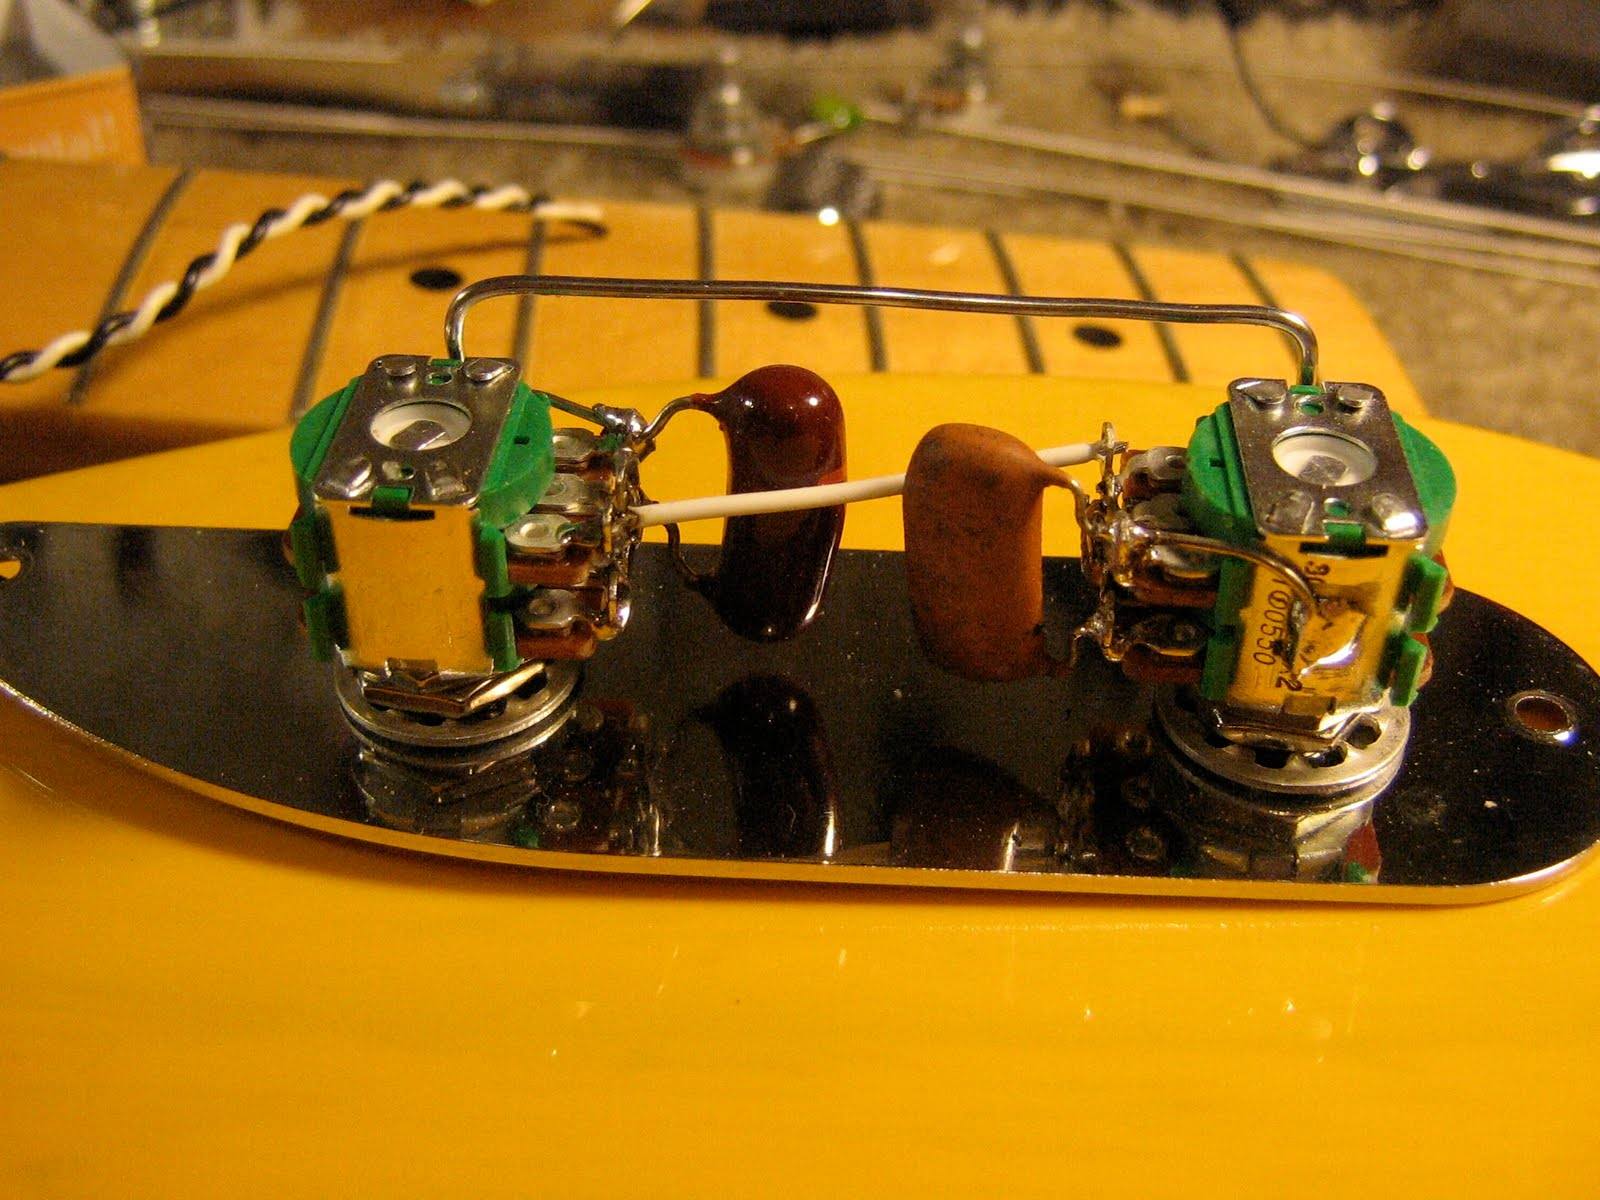 Daily Guitar Repair April 2010 Telecaster Pickup Wiring Stack Wire It Like A 60s Jazz Bass With 2 Dual Concentric Pots Or The Upper Knobs Being Volume For Each Lower Are Tone